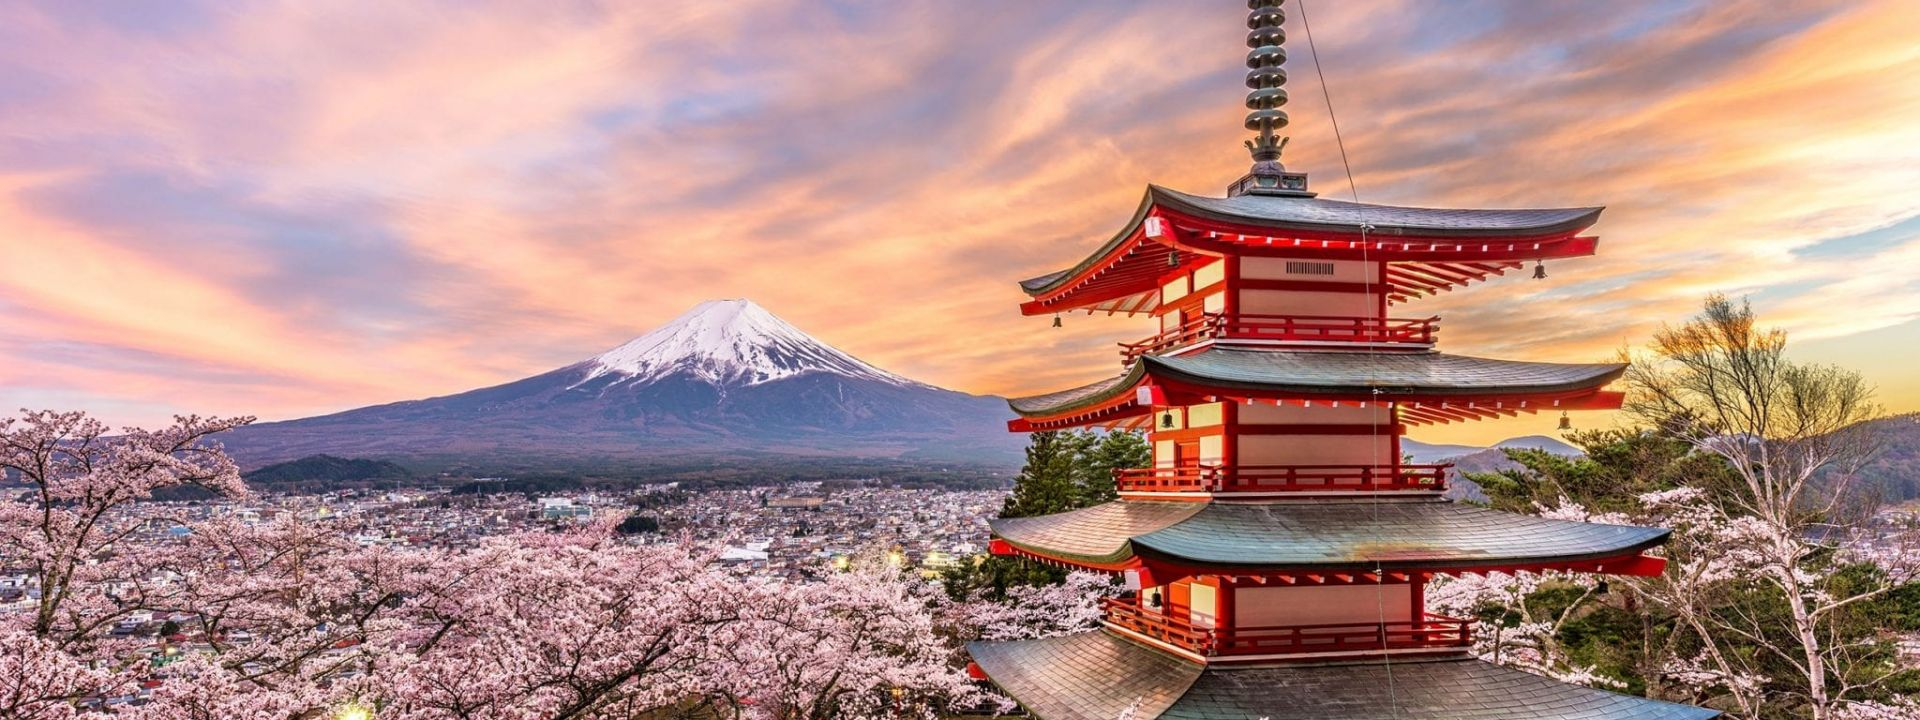 A tower surrounded by beautiful cherry blossoms